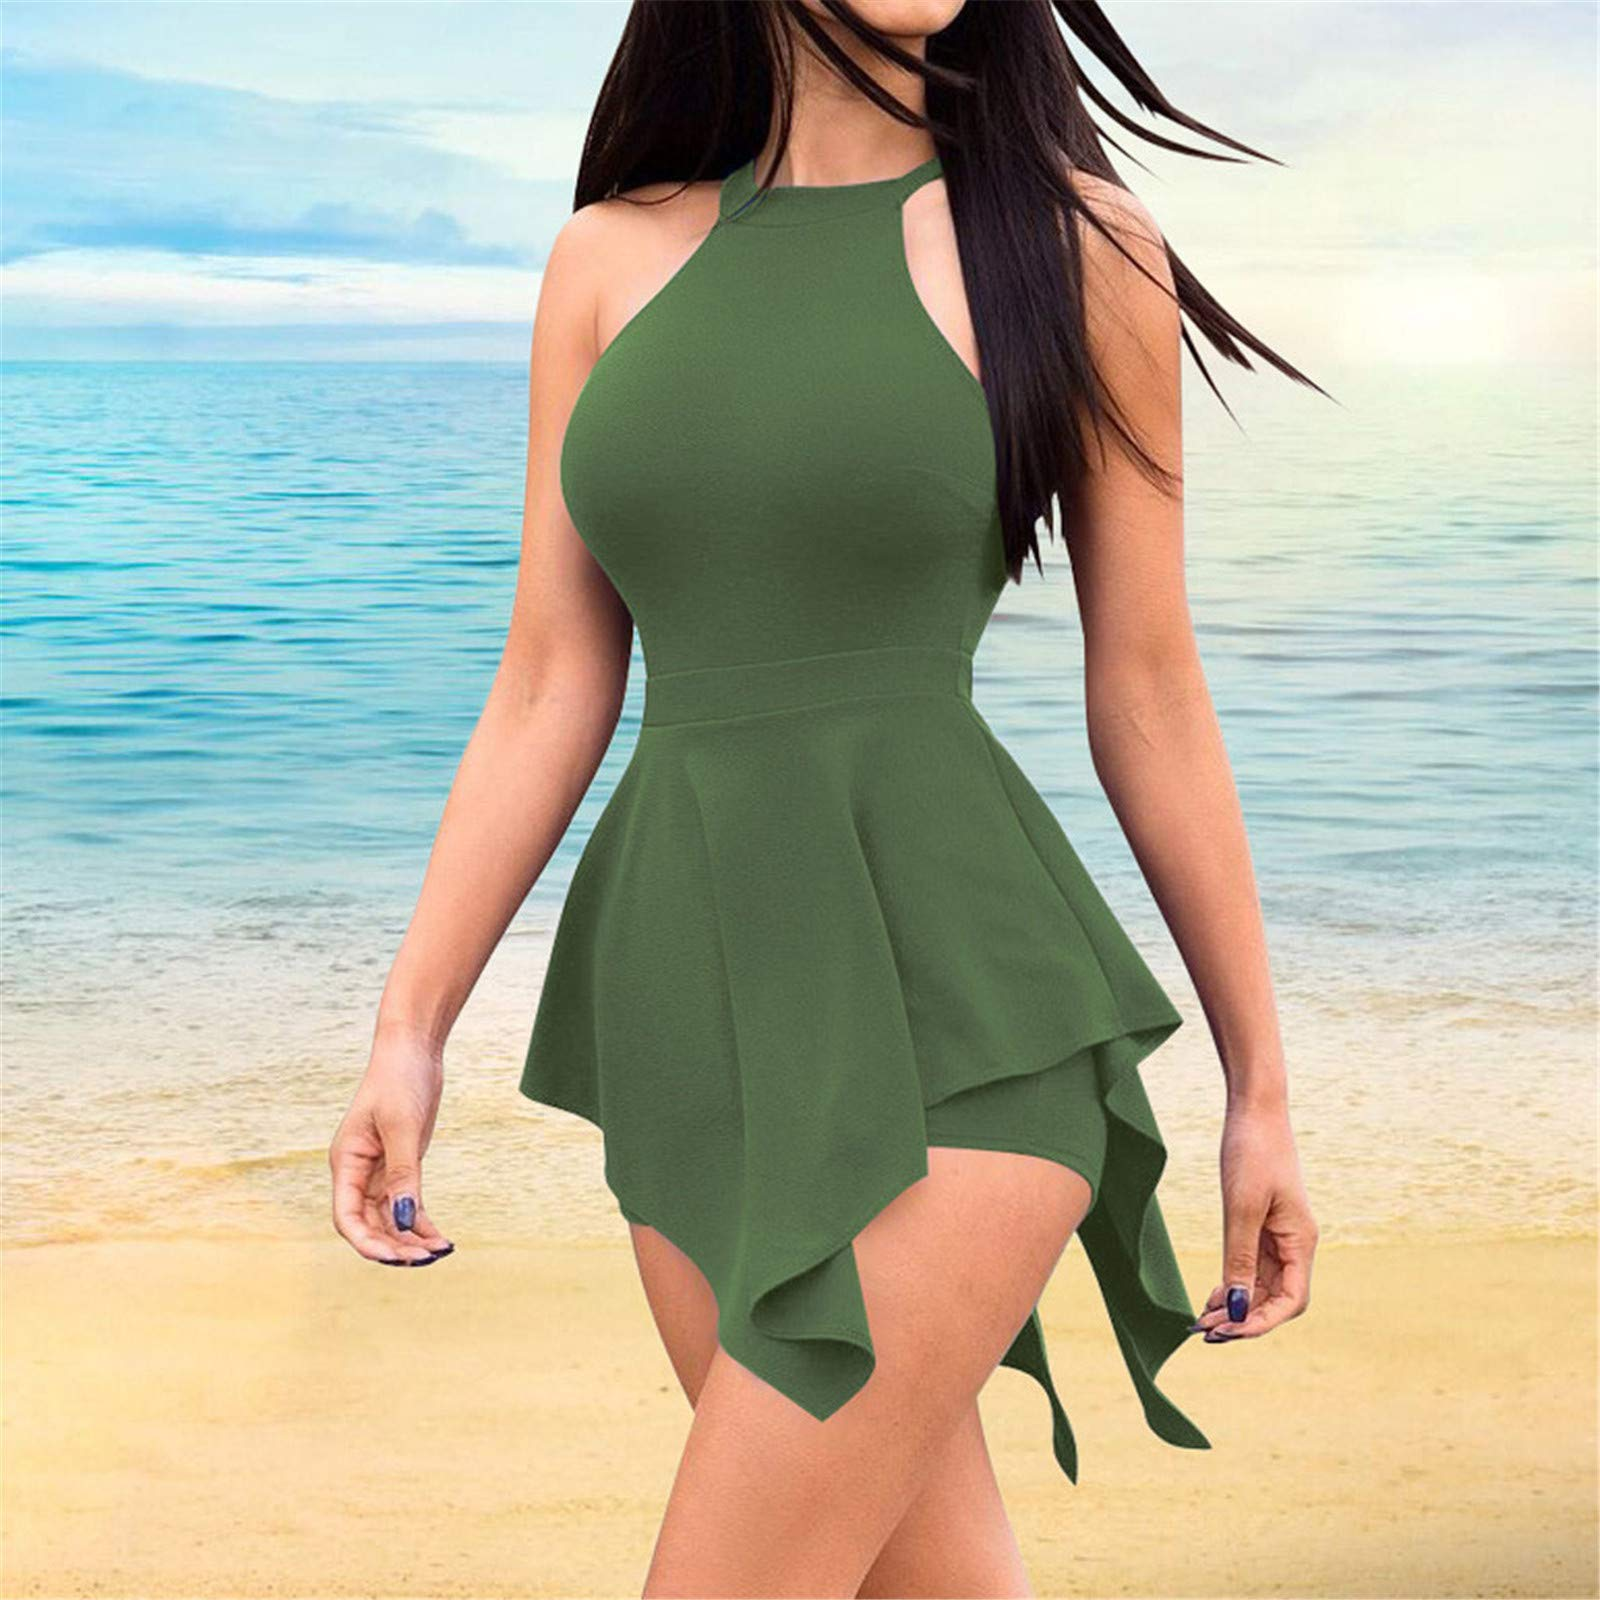 Thenxin Womens Halter Beach Jumpsuit Sleeveless Solid Color Zipper Back Ruffle Hem Holiday Rompers(Green,L) by Thenxin (Image #2)